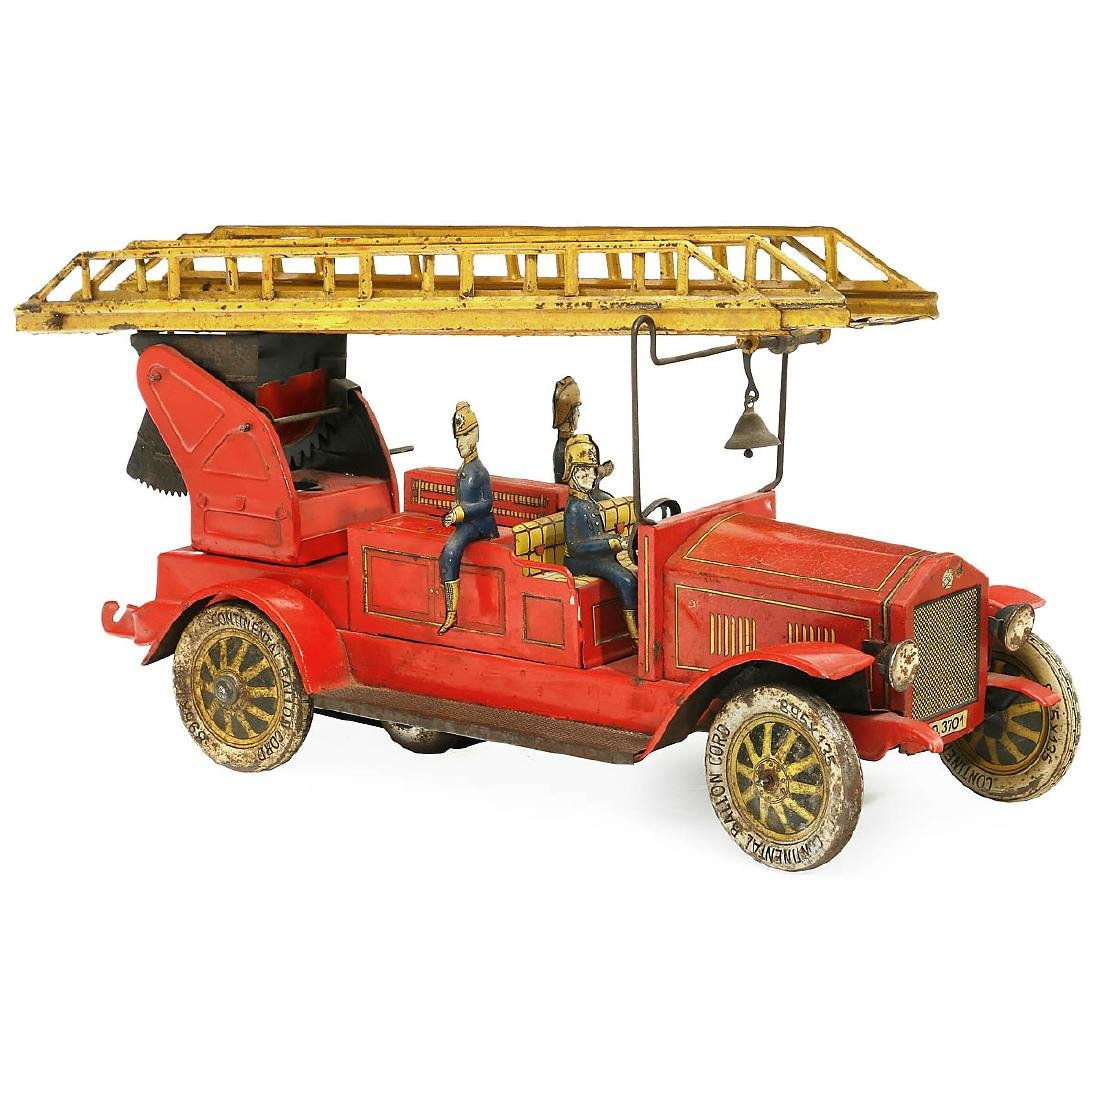 Large Distler Fire Brigade Toy, c. 1930